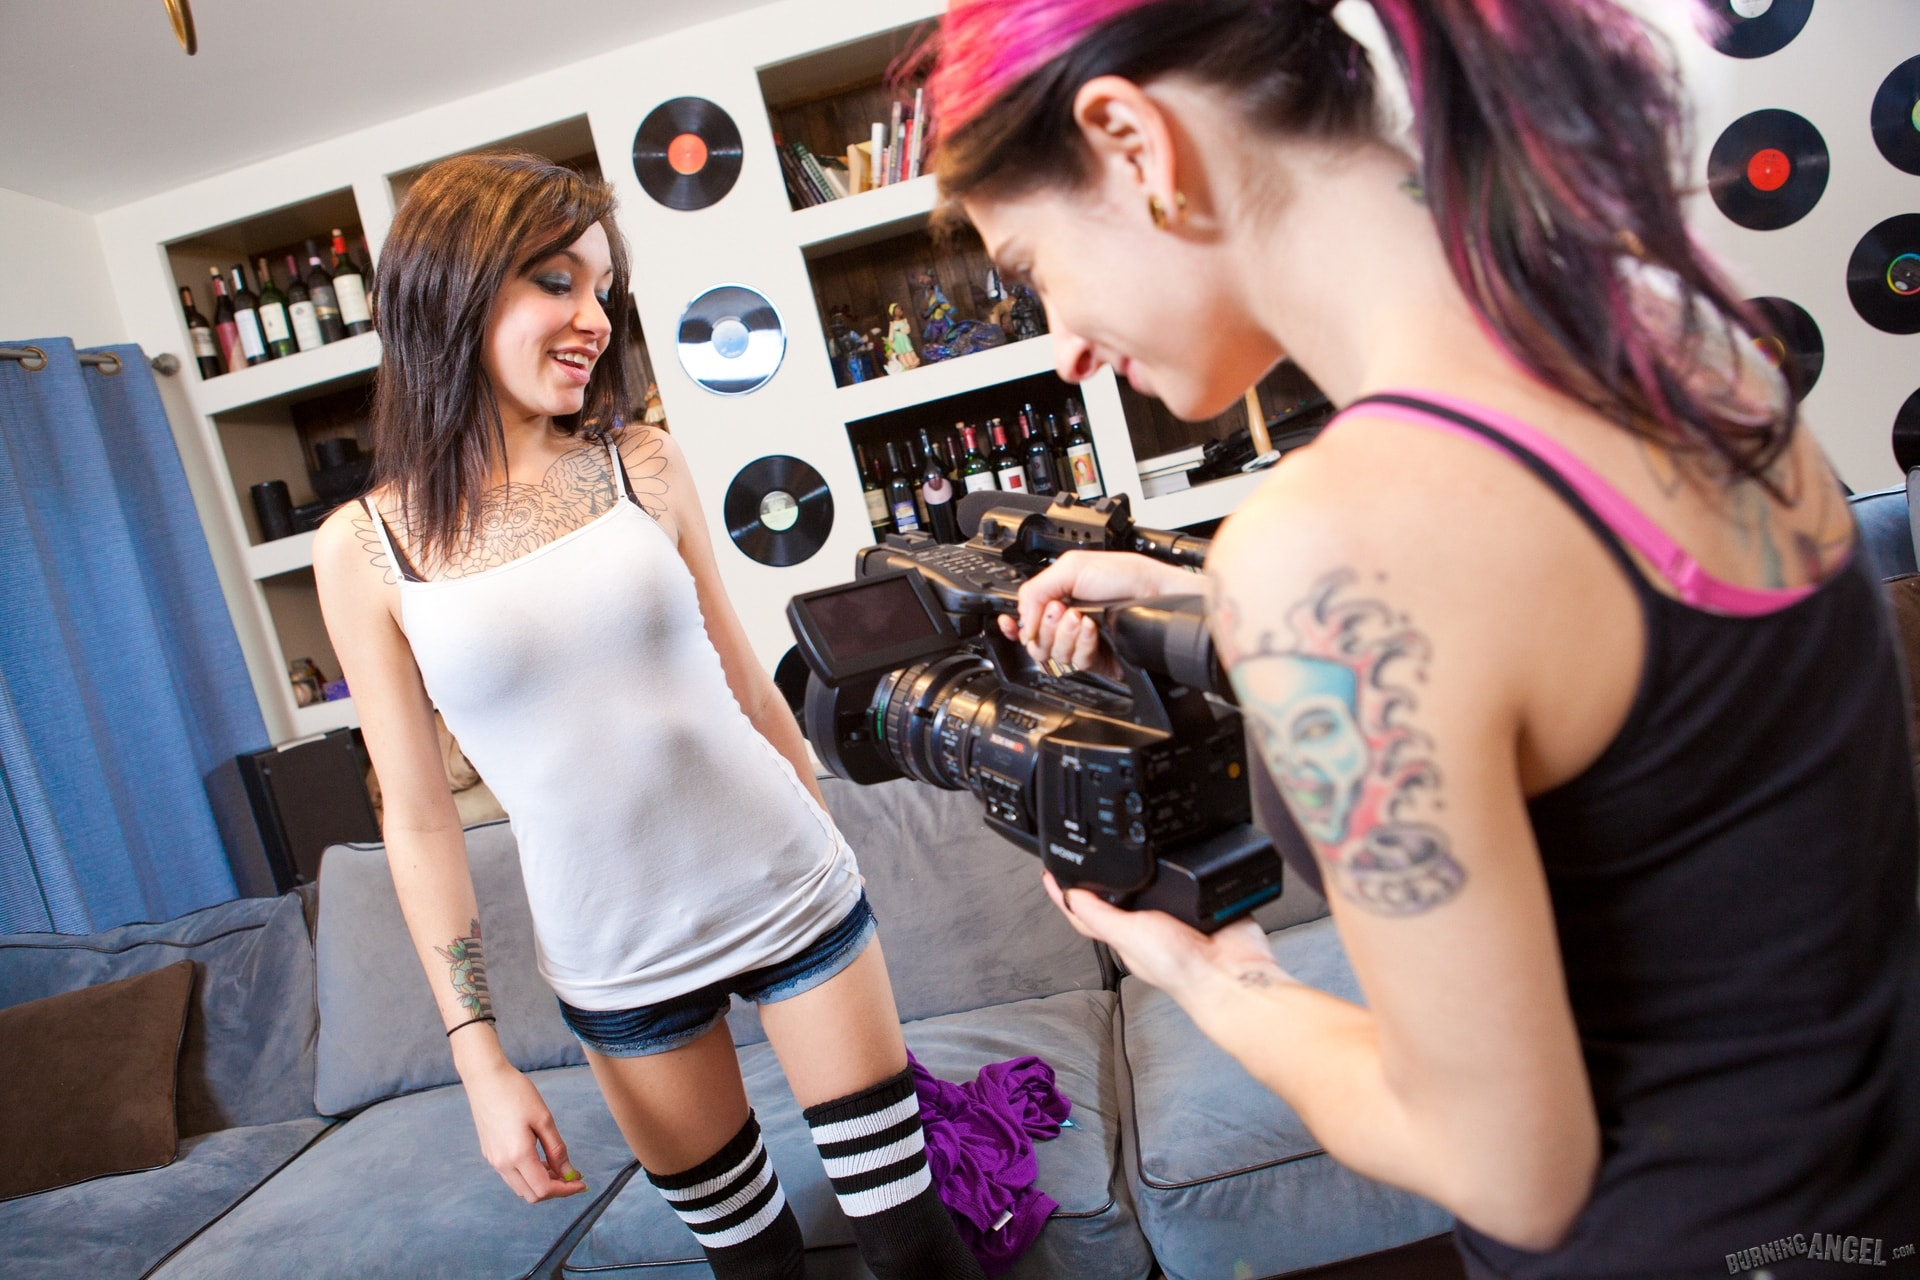 Burning Angel 'Juliette's First Time' starring Joanna Angel (Photo 1)